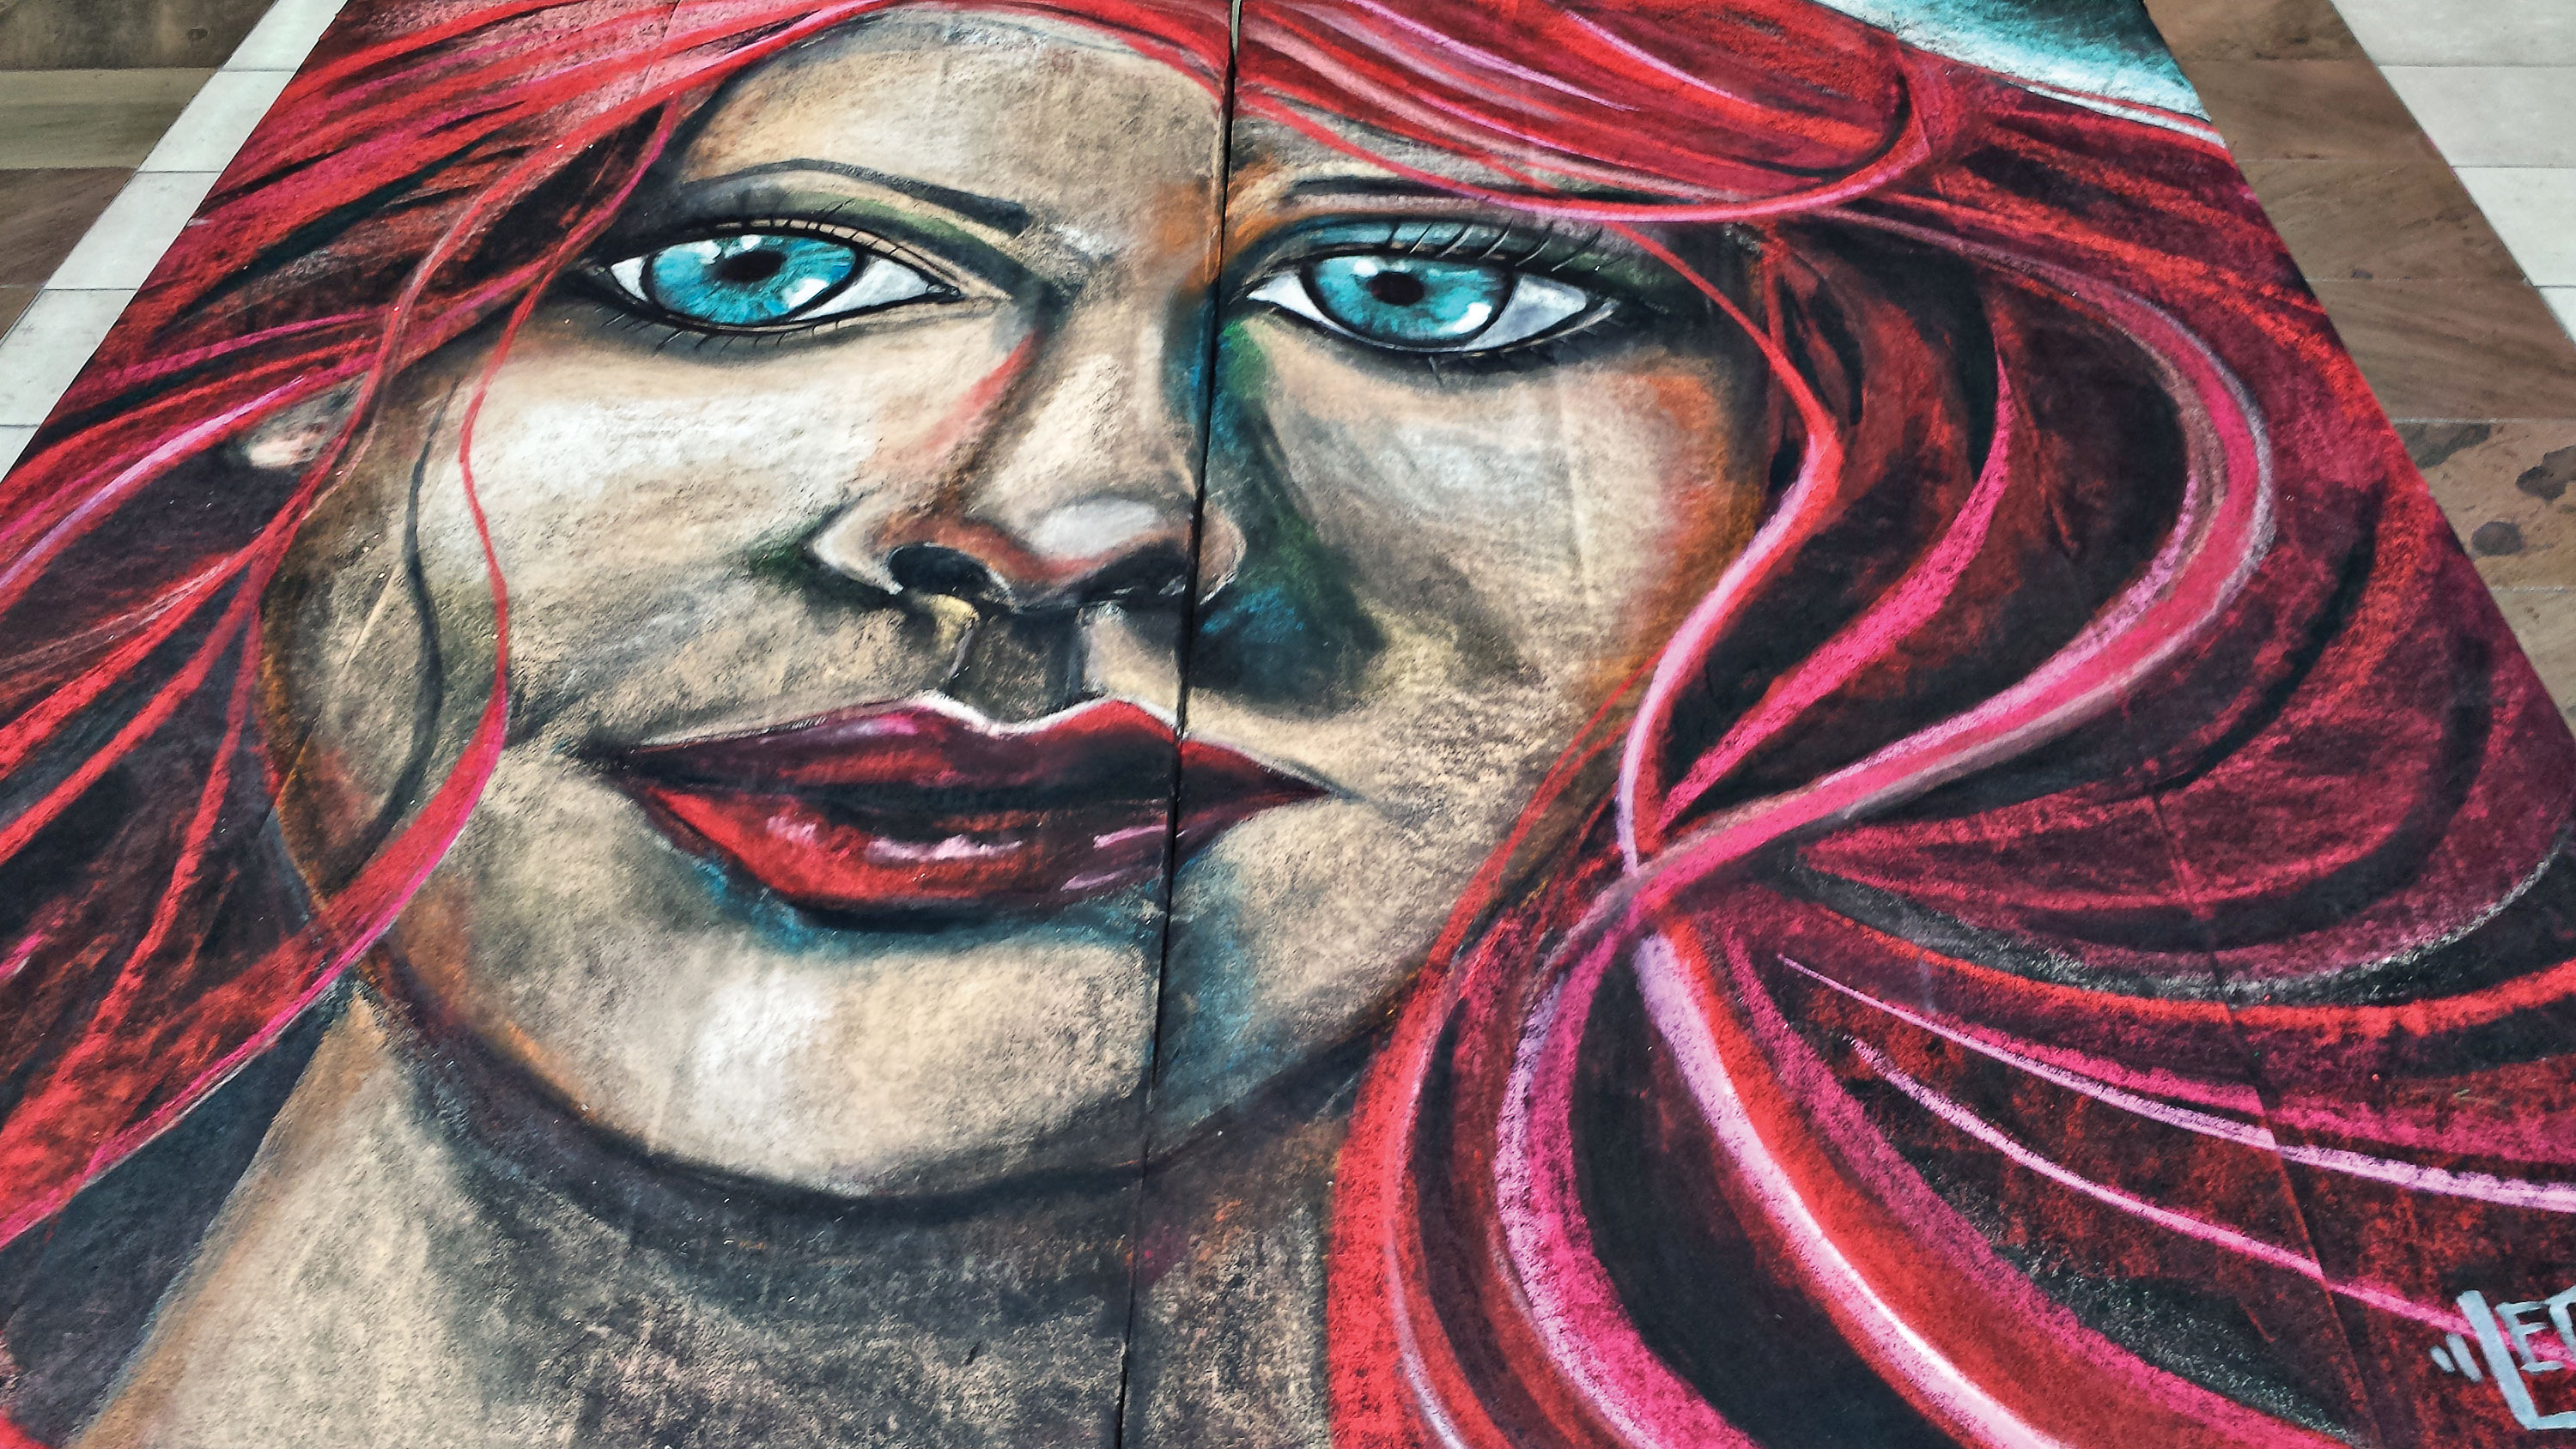 Third Place: Bob Johnson - Girl With The Flaming Red Hair